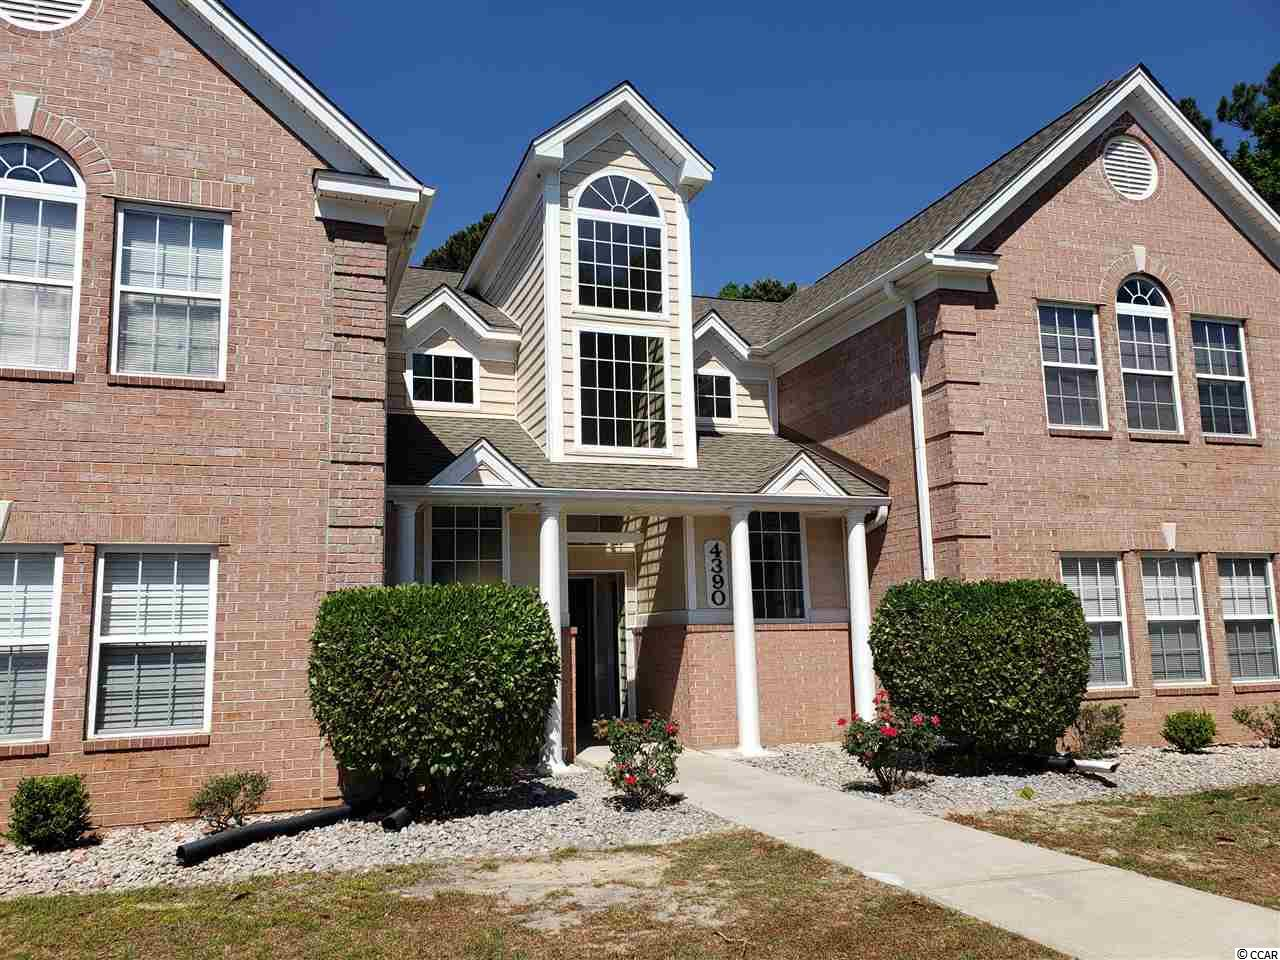 Check out this ground floor condo in Murrells Inlet, SC! This 3 bedroom, 2 bath unit features beautiful laminate floors with a spacious living area & den! Each bedroom has spacious closets and ample storage space, and these ground floor condos are highly desired. No stairs to access the unit, and no waiting on elevators! This complex also features an outdoor pool and tennis court for owners and owner's guests. In addition, this property is located 1/4 mile to the Waccamaw Hospital, food, shopping, and more. Enjoy the isolation of Murrells Inlet, but also enjoy the short proximity to everything Myrtle Beach has to offer! Golfers will enjoy the convenience of the Wachesaw Plantation Golf Course which is located right across the street from the complex. This first floor unit will not last long; MOTIVATED SELLER!